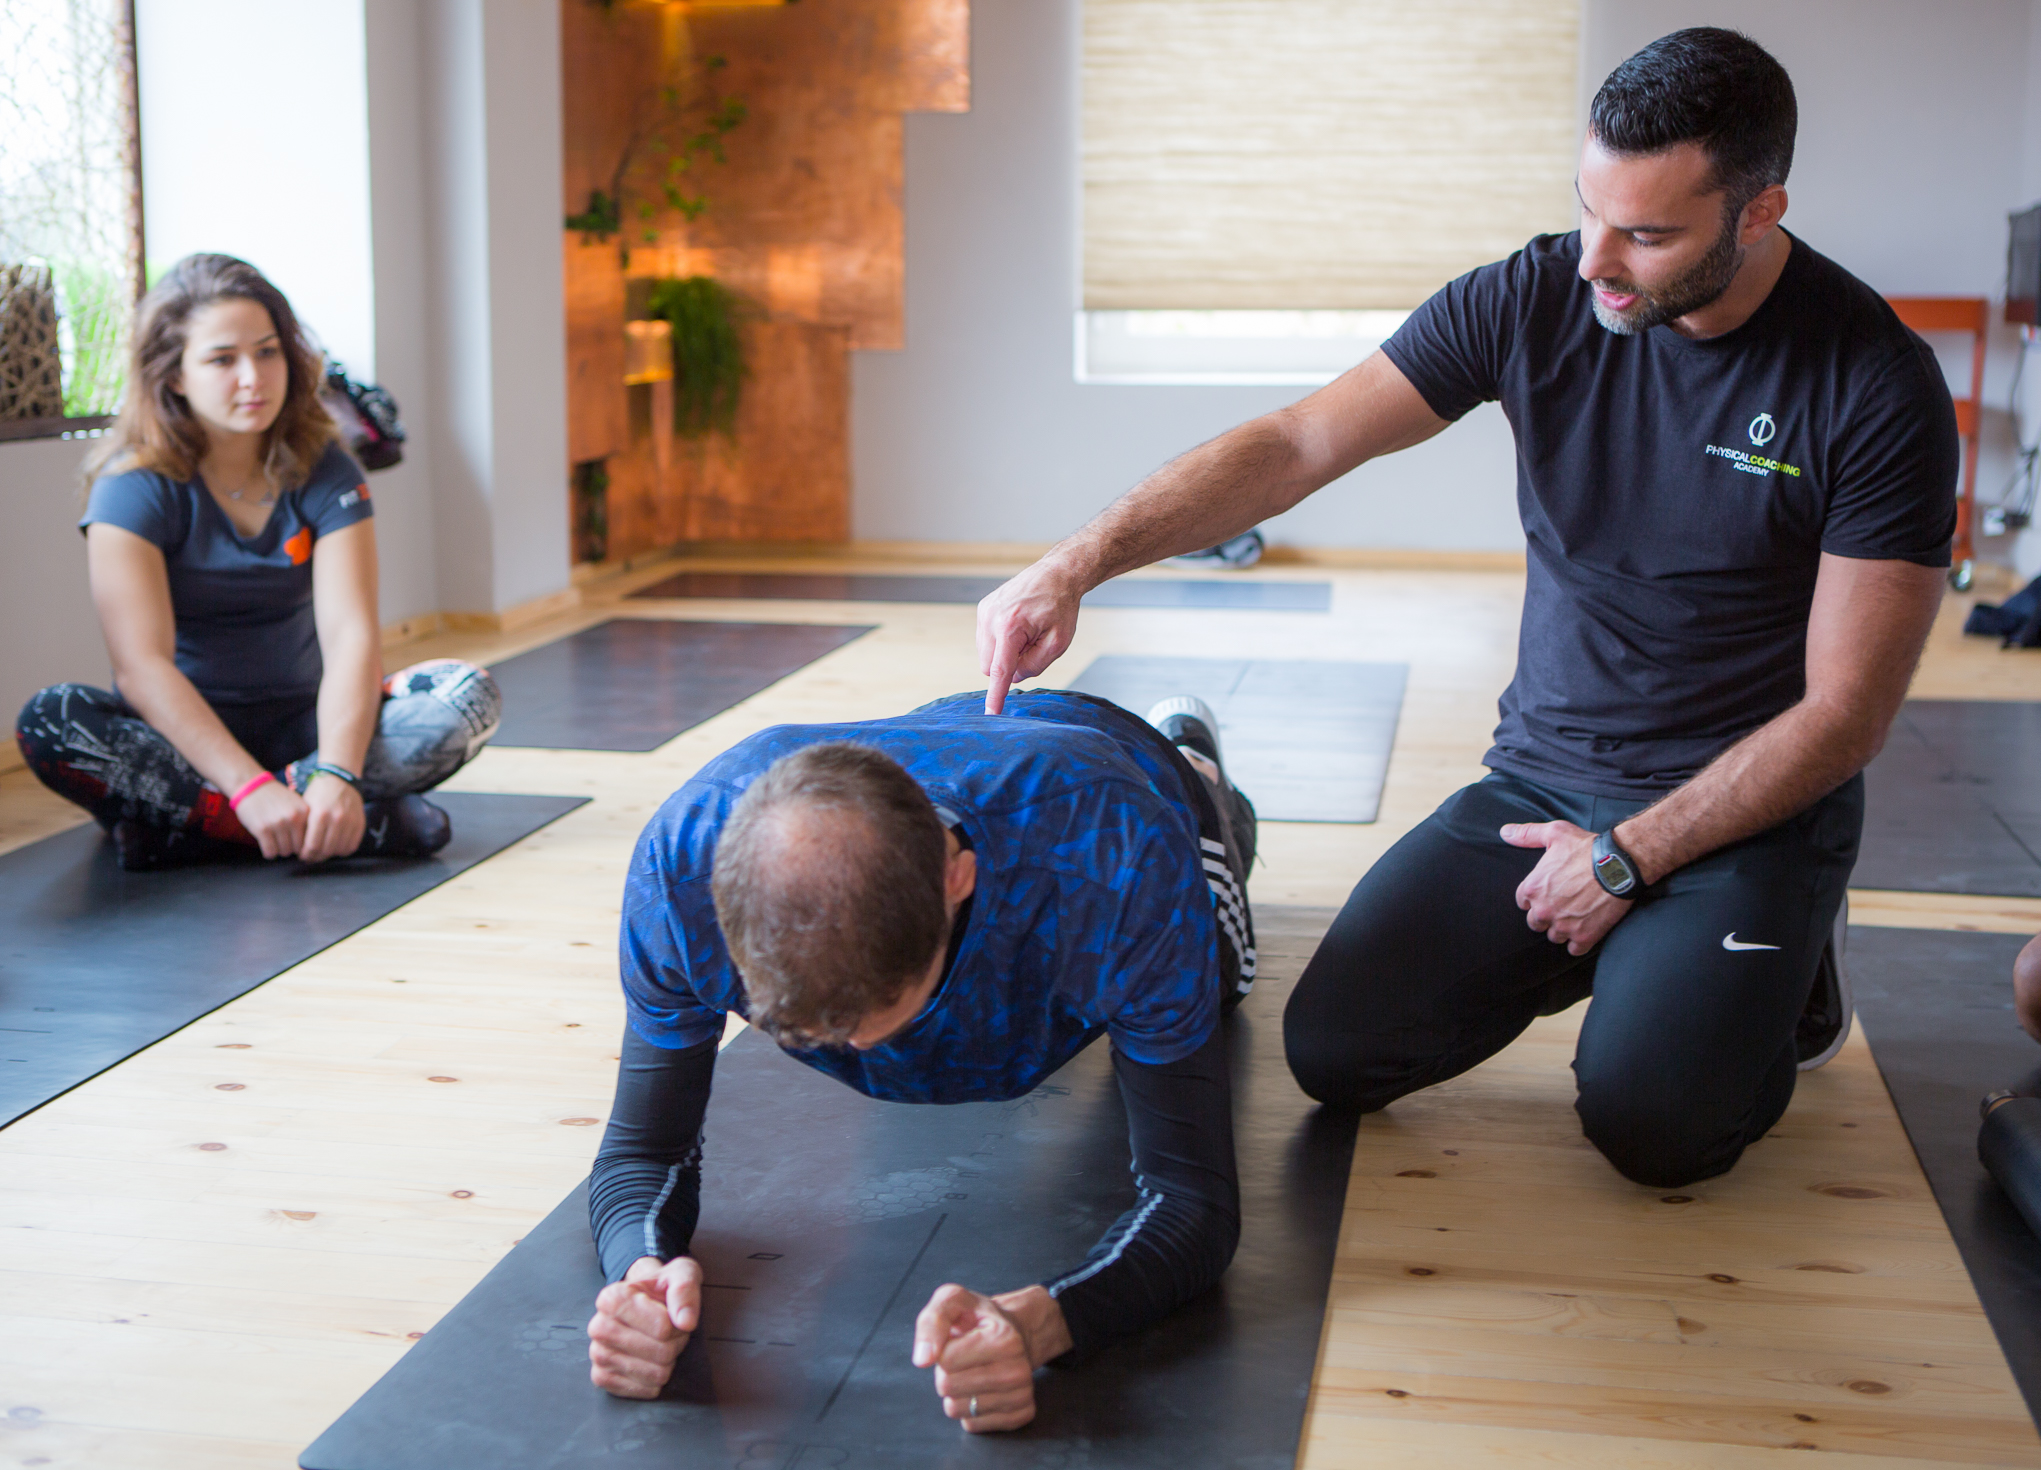 personel-training-nasm-formation-Physical-Trainer